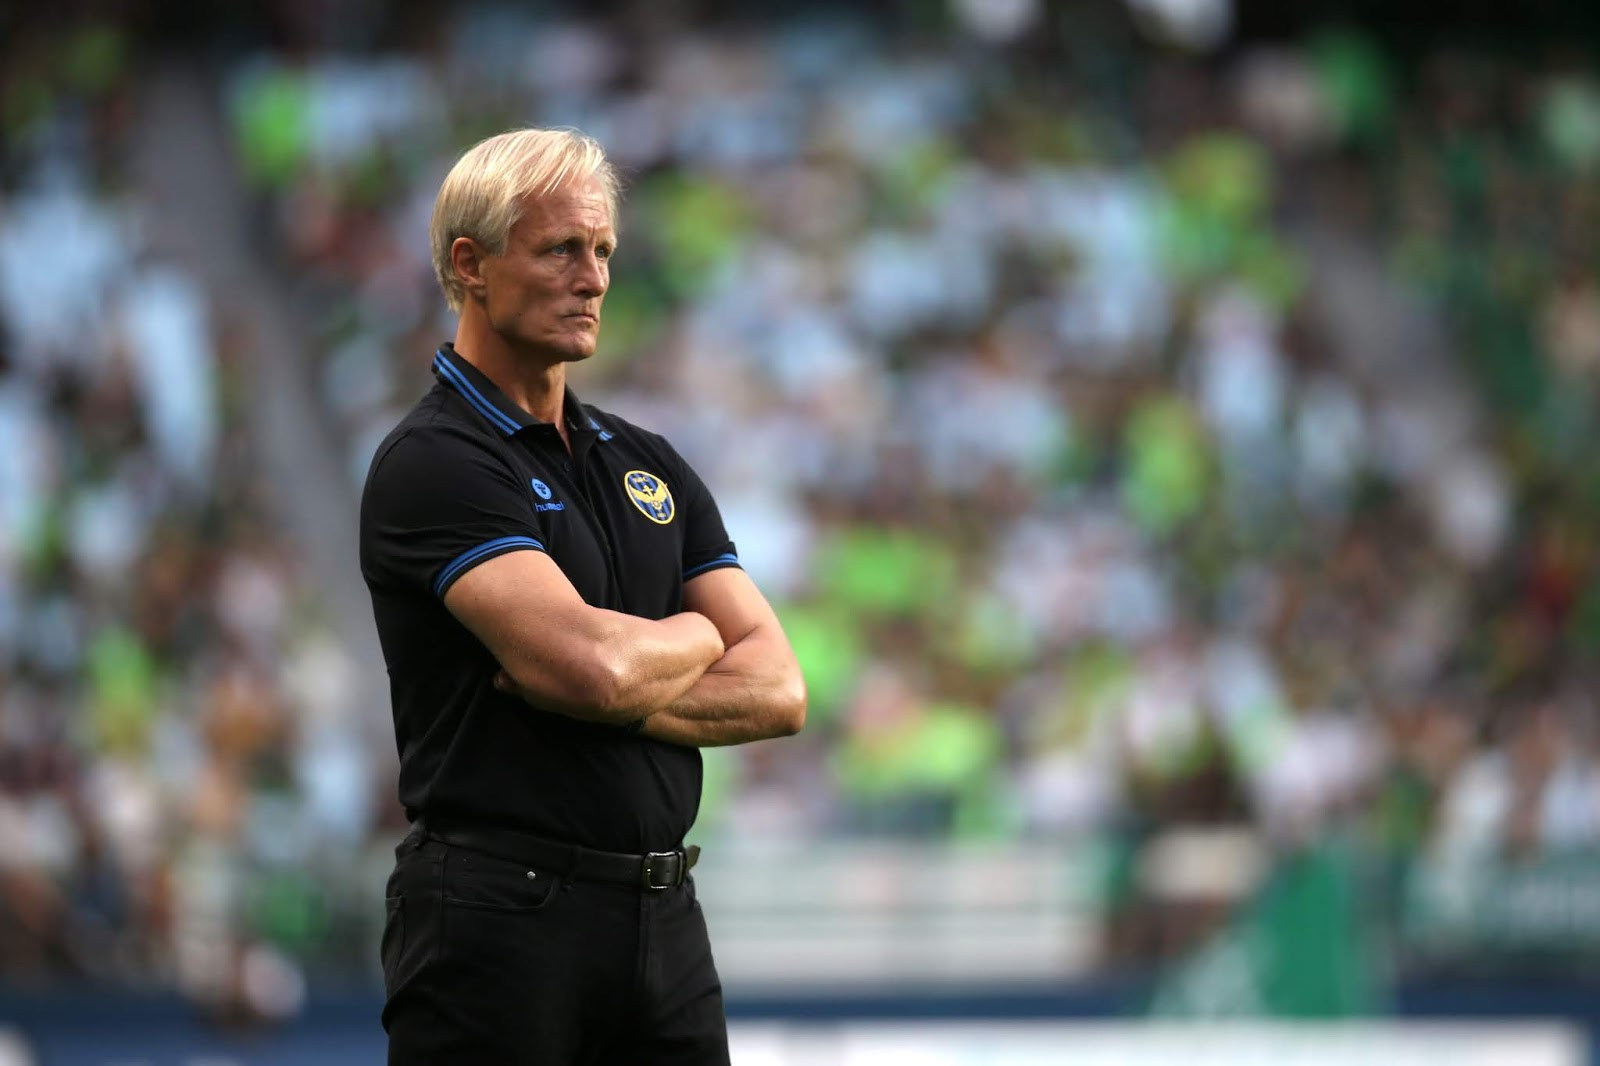 Incheon United Manager Jørn Andersen